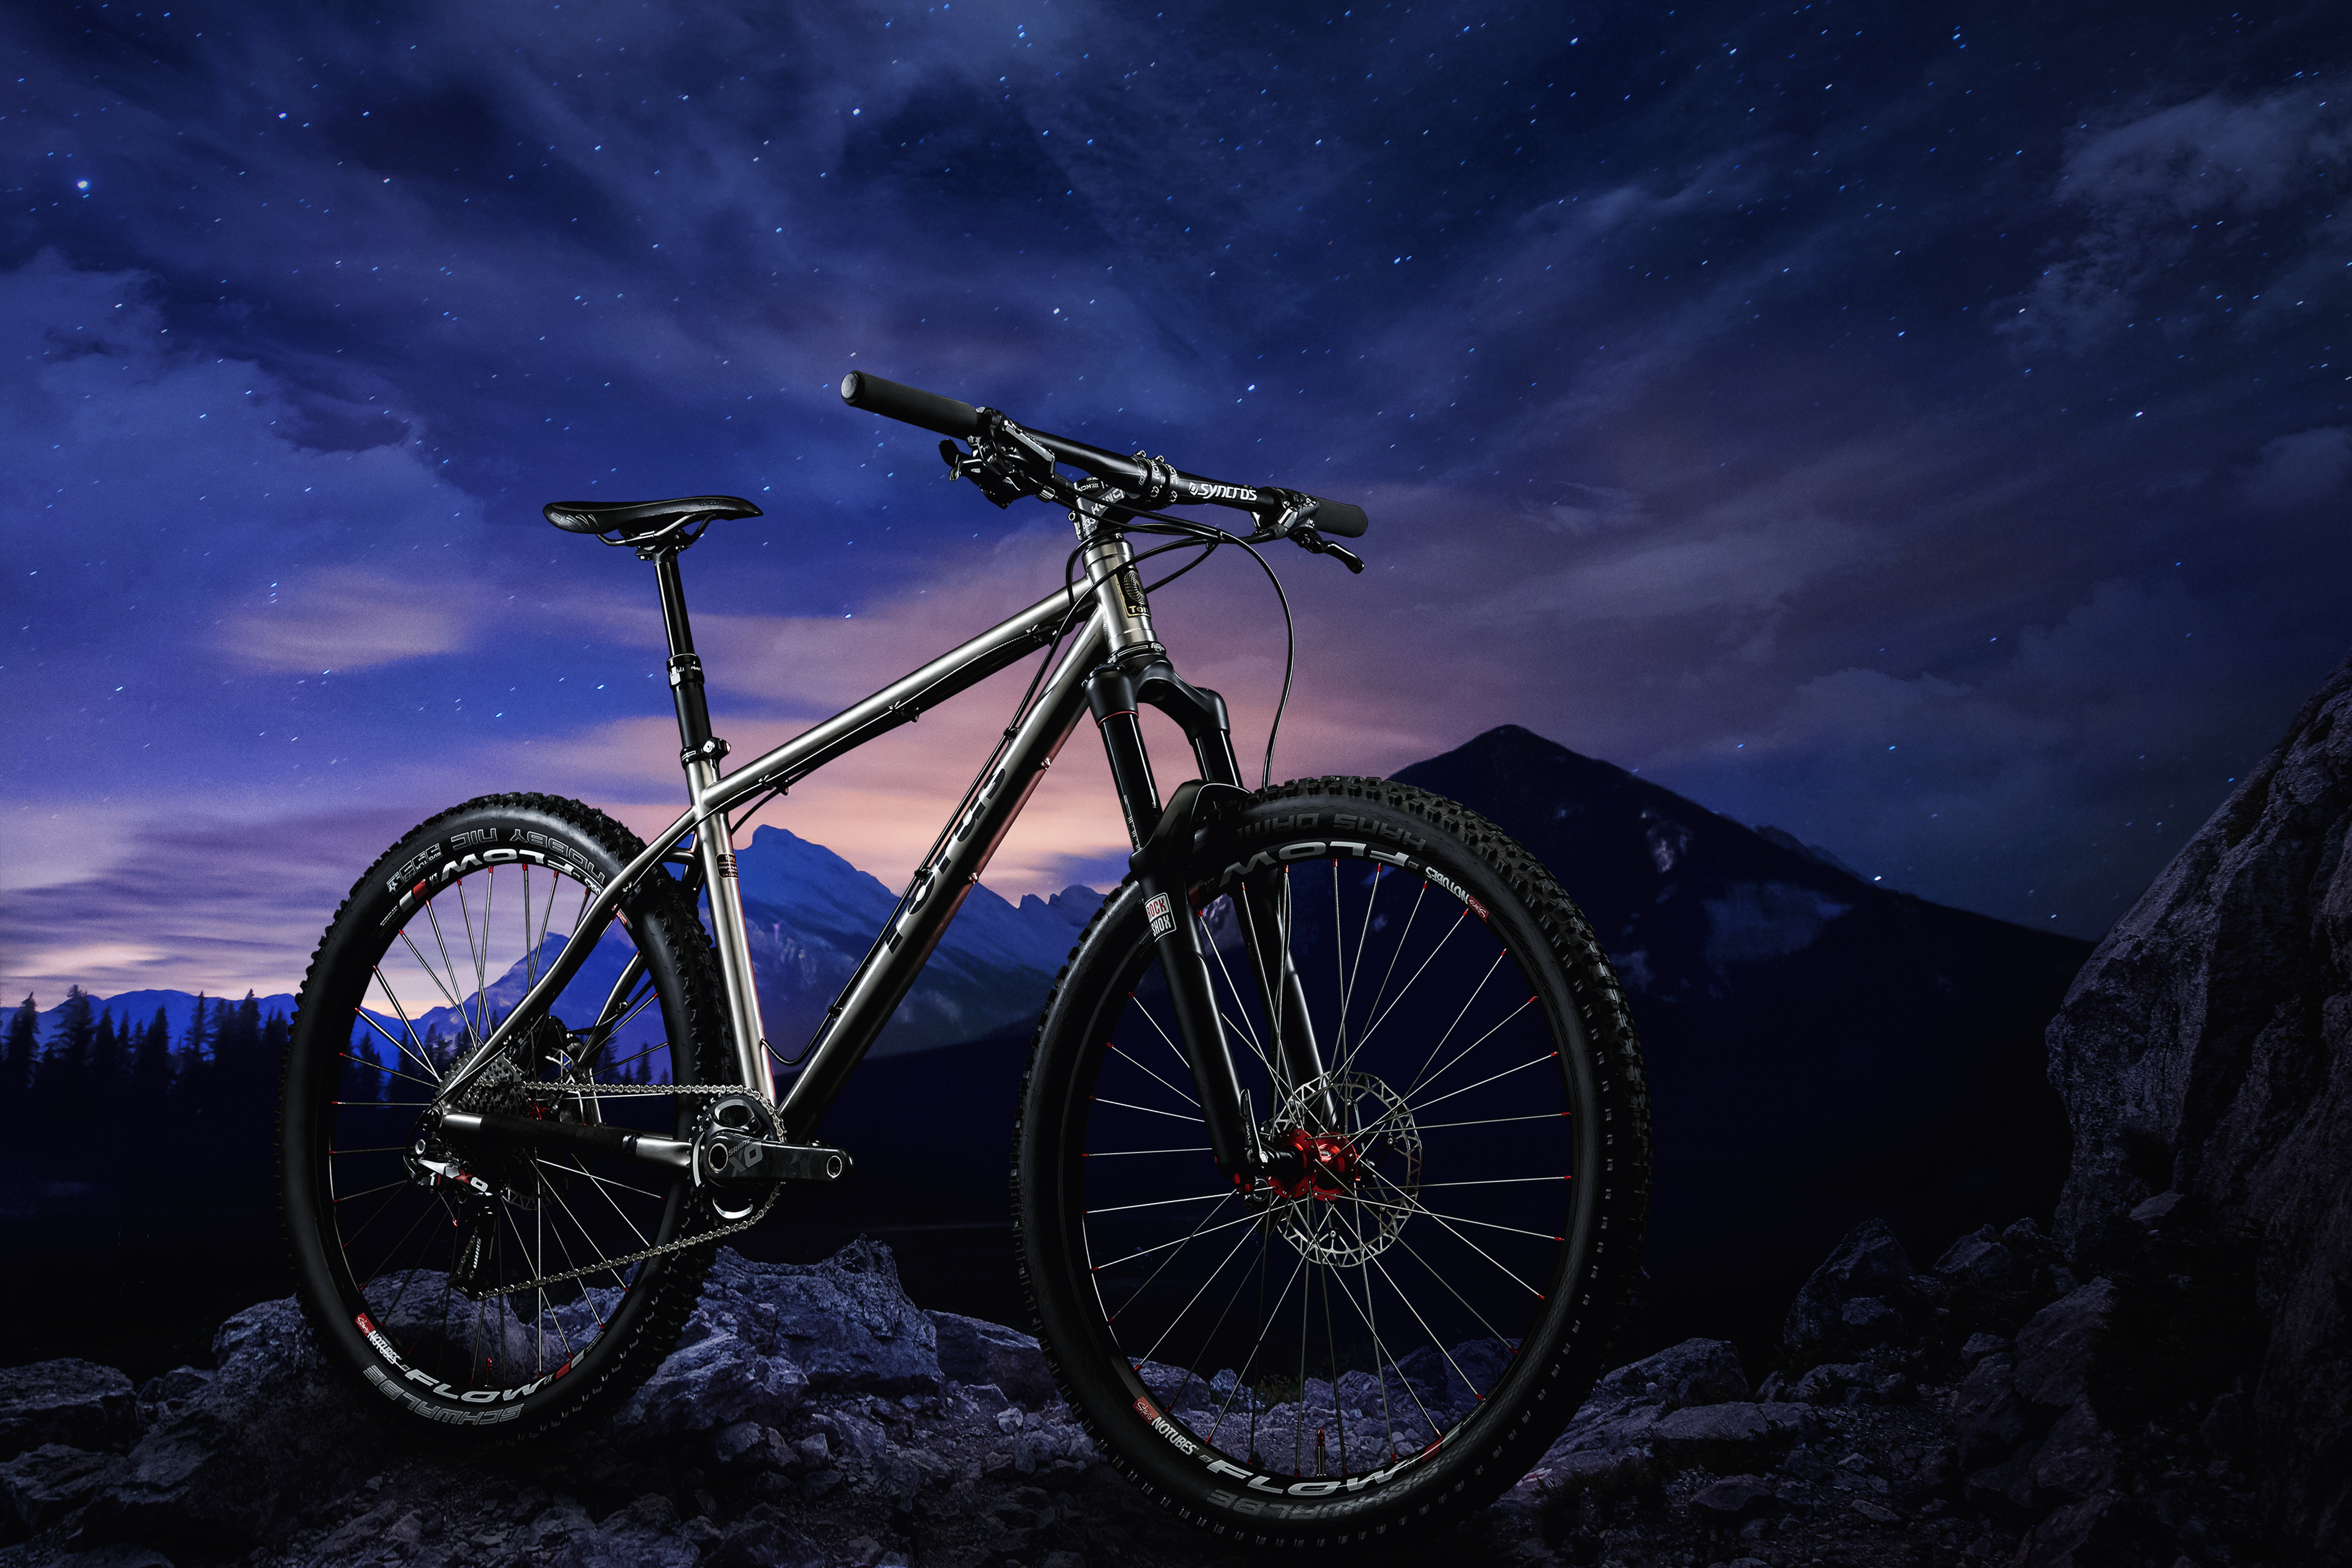 Torus Bikes creative product composite